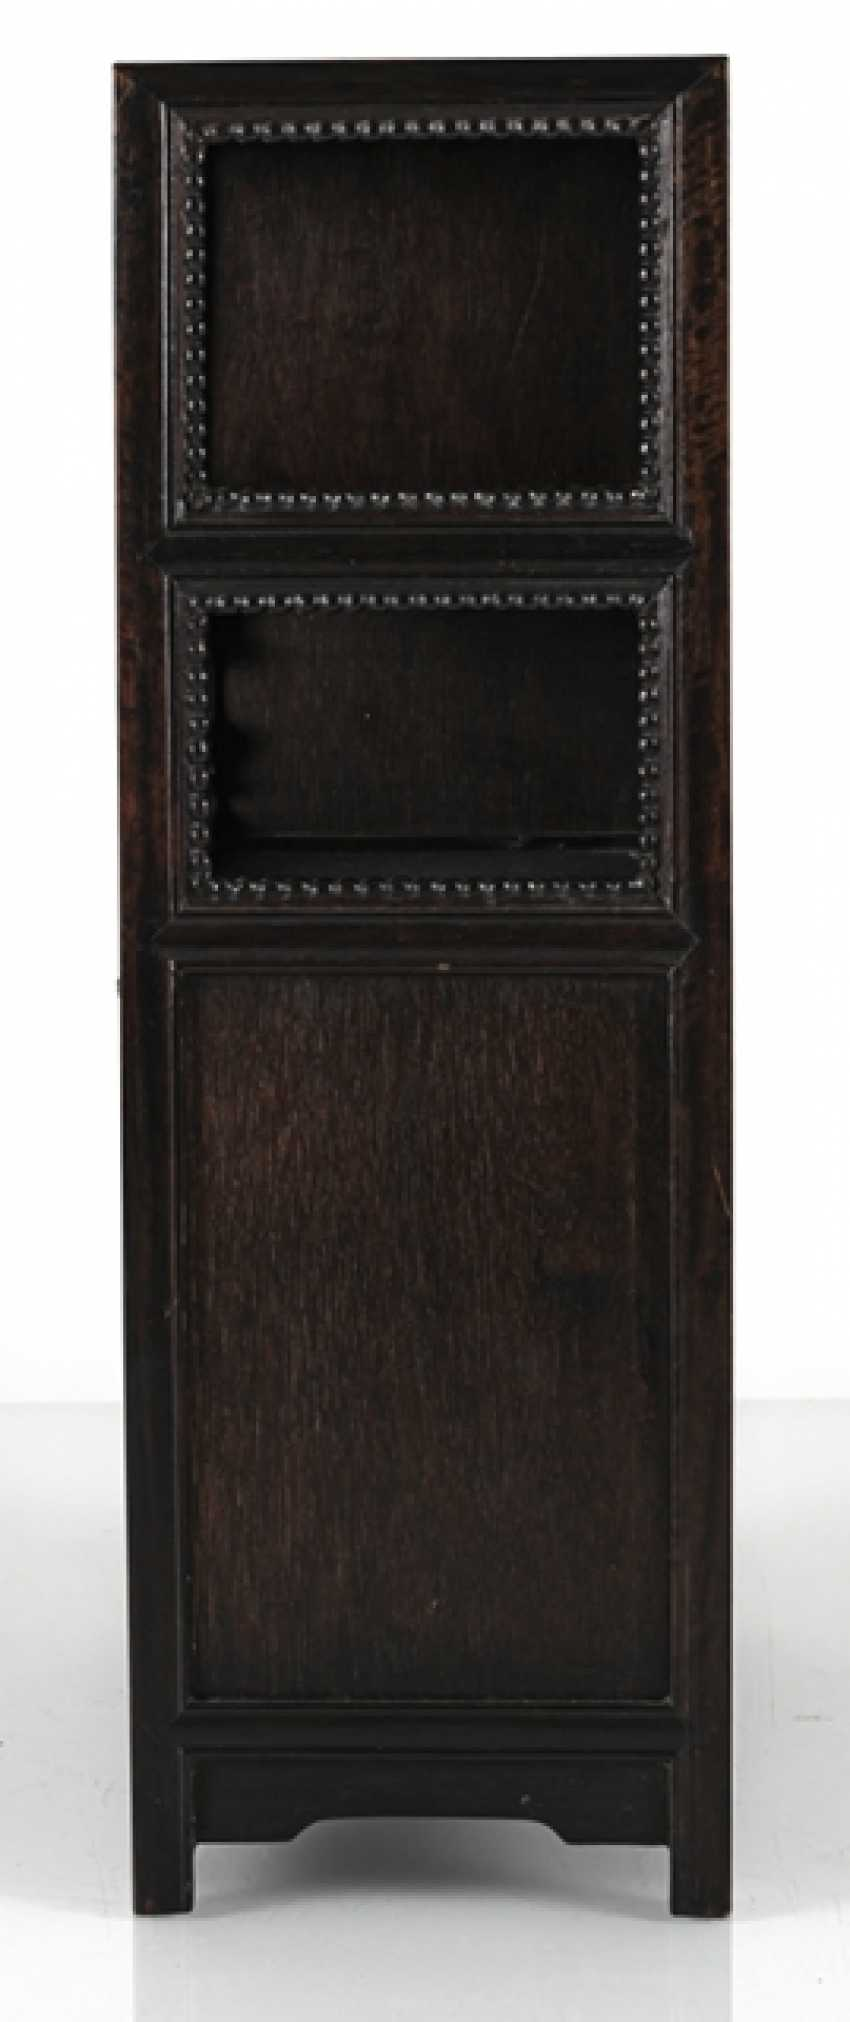 Small Cabinet made of hard wood with Display compartments - photo 4